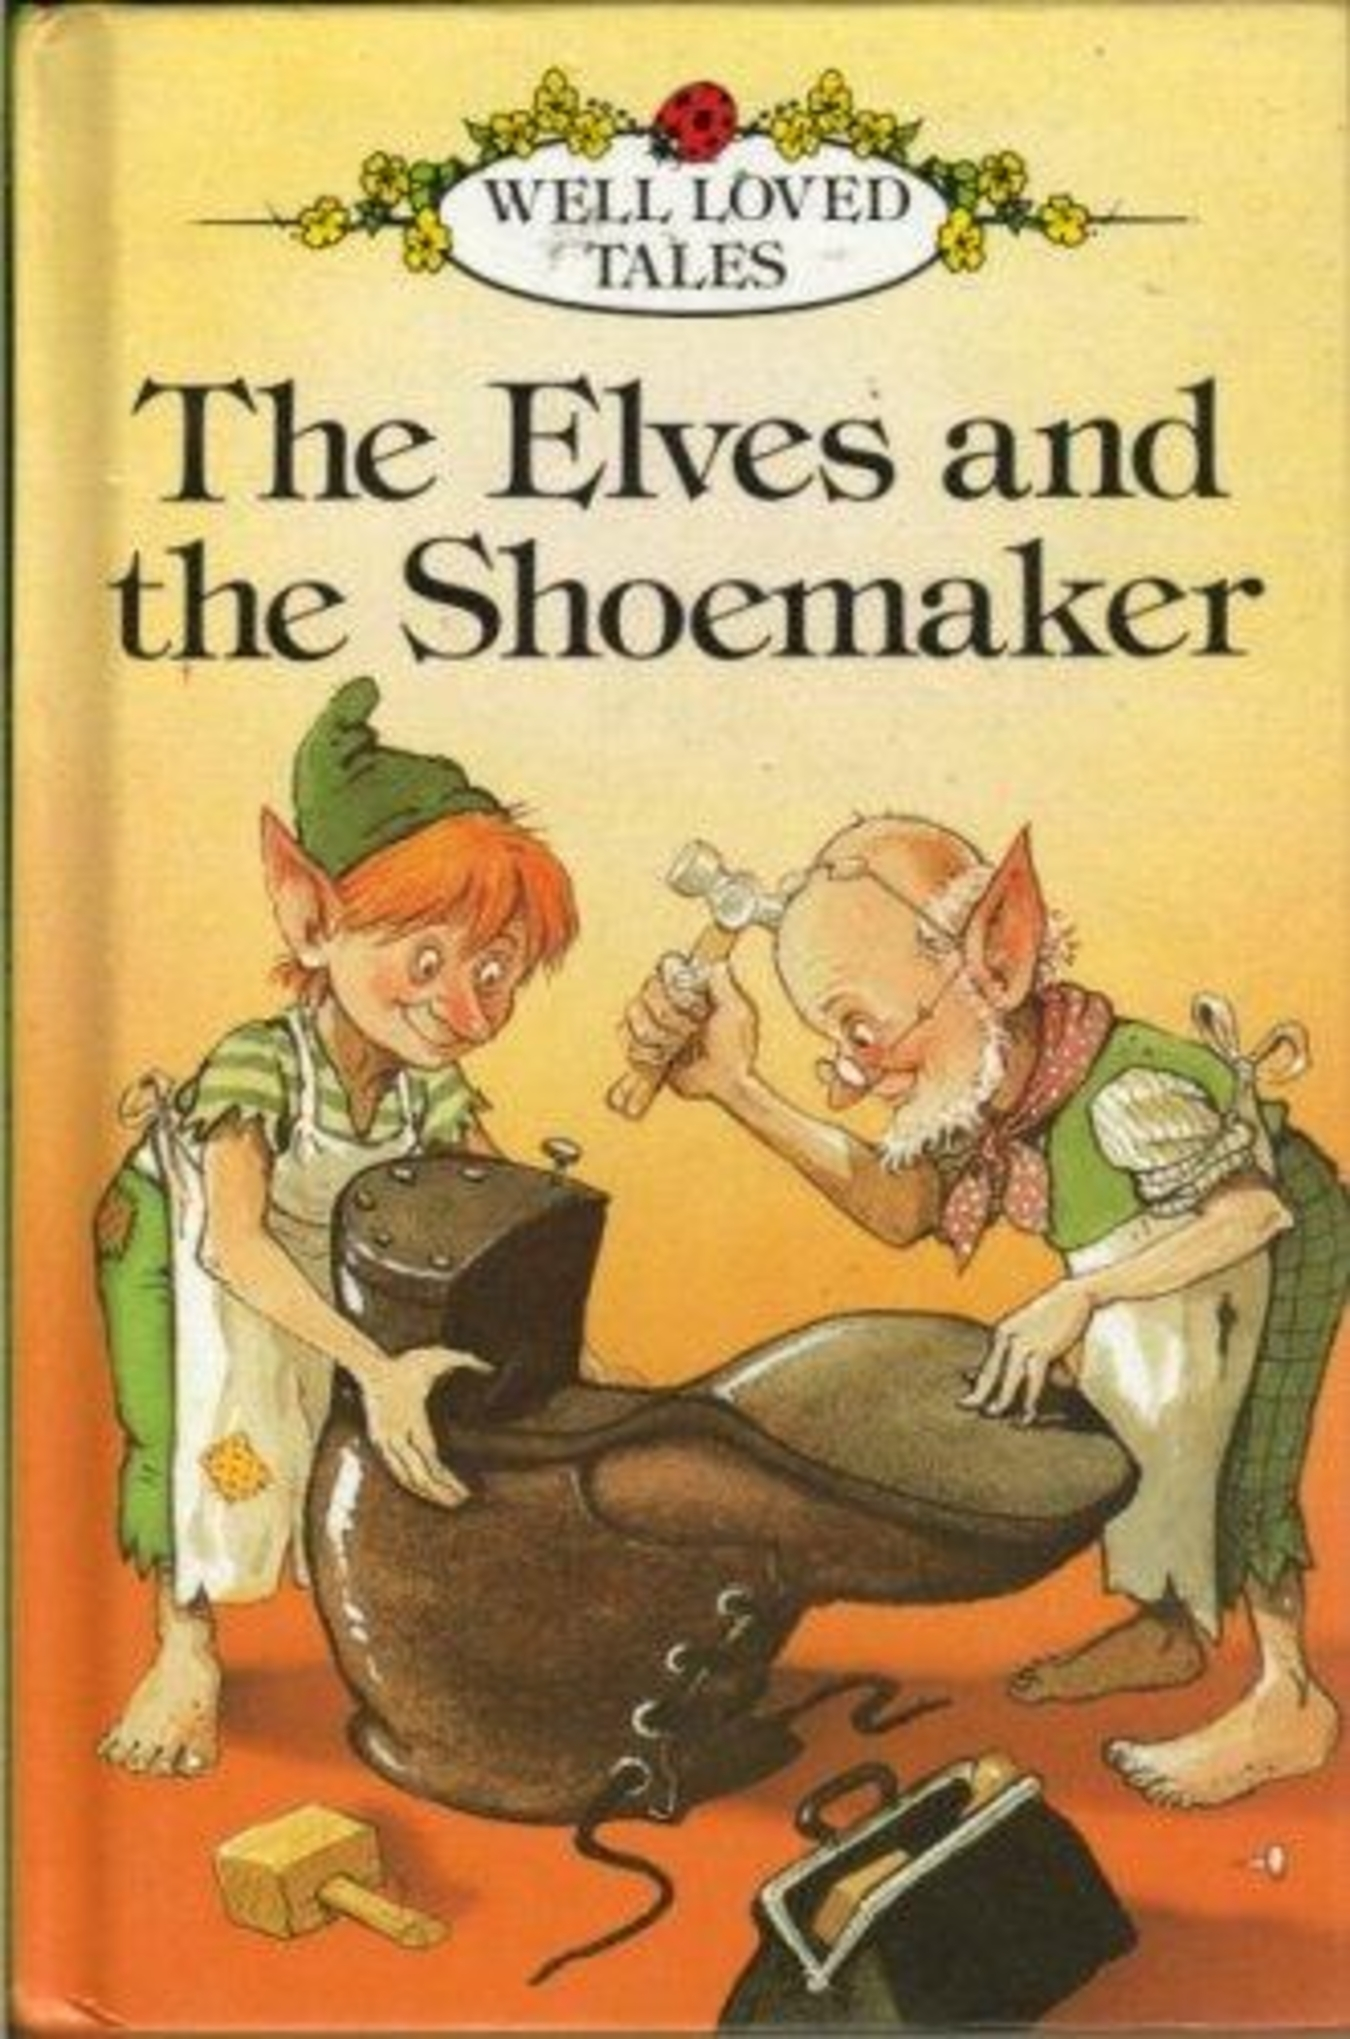 The Gingerbread Man Story PowerPoint - ginger bread Shoemaker and the elves story with pictures